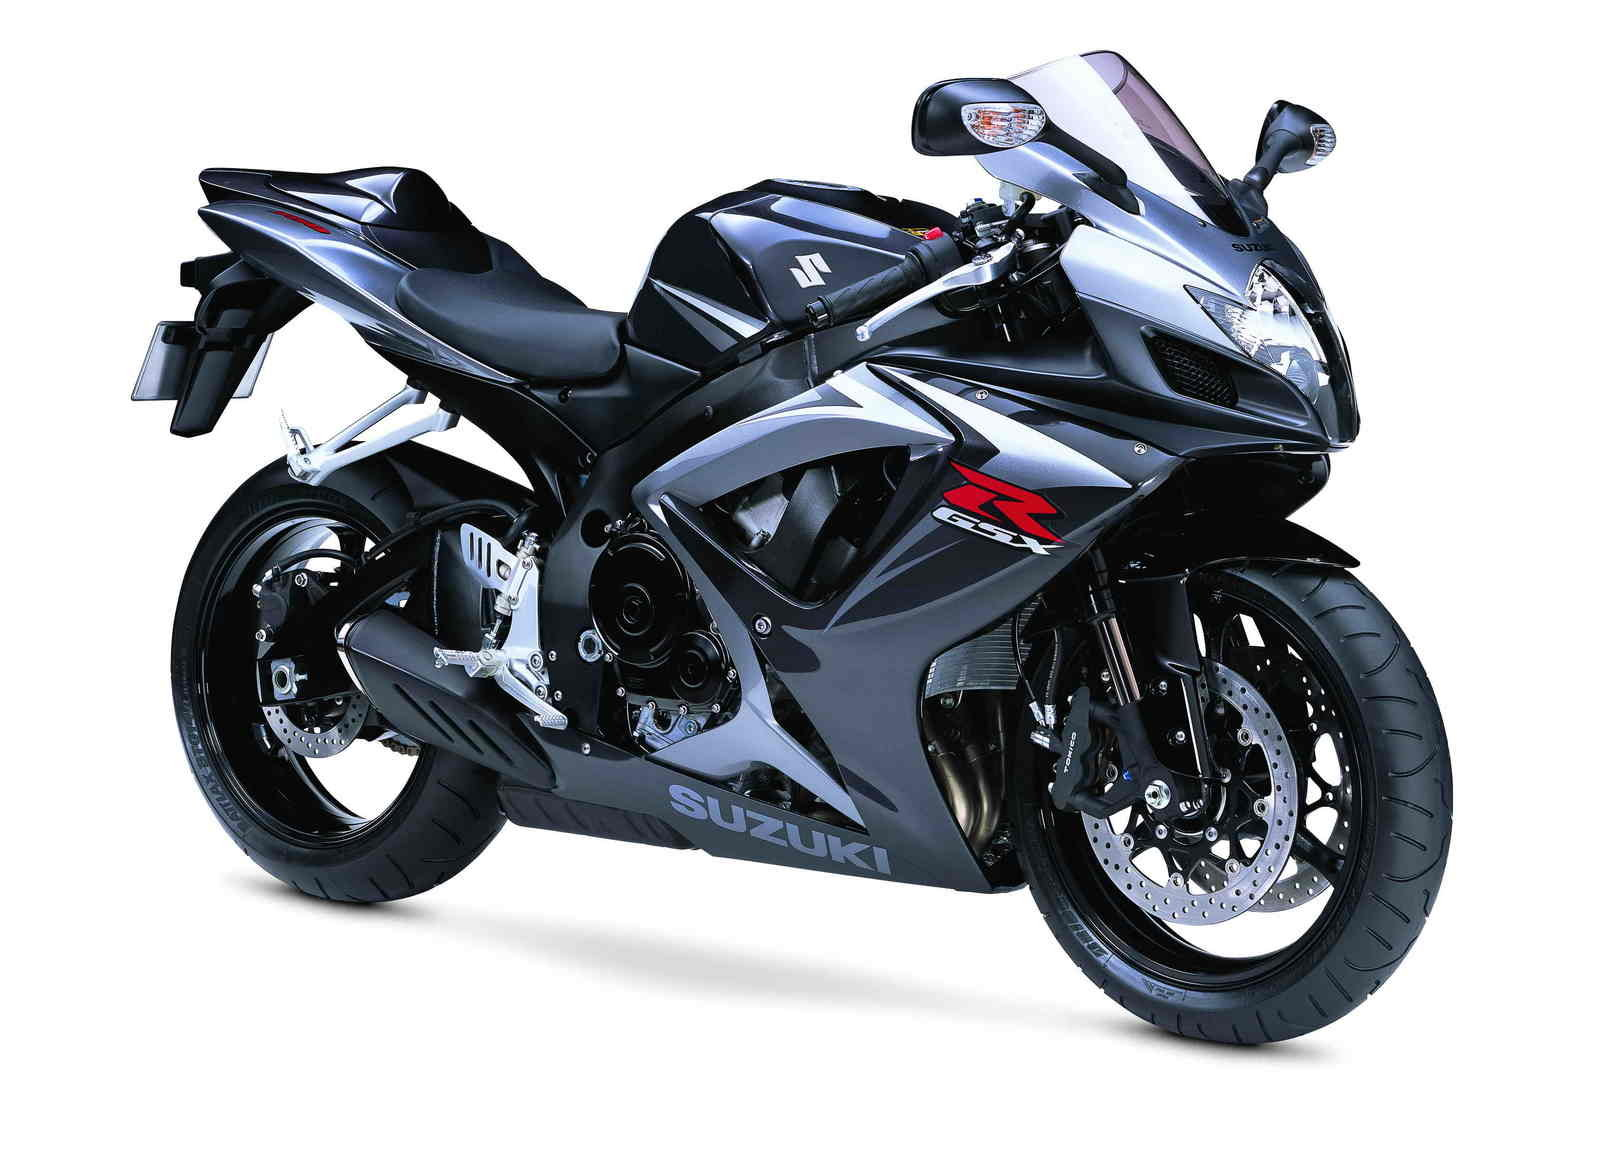 2007 suzuki gsx r750 picture 109985 motorcycle review top speed. Black Bedroom Furniture Sets. Home Design Ideas